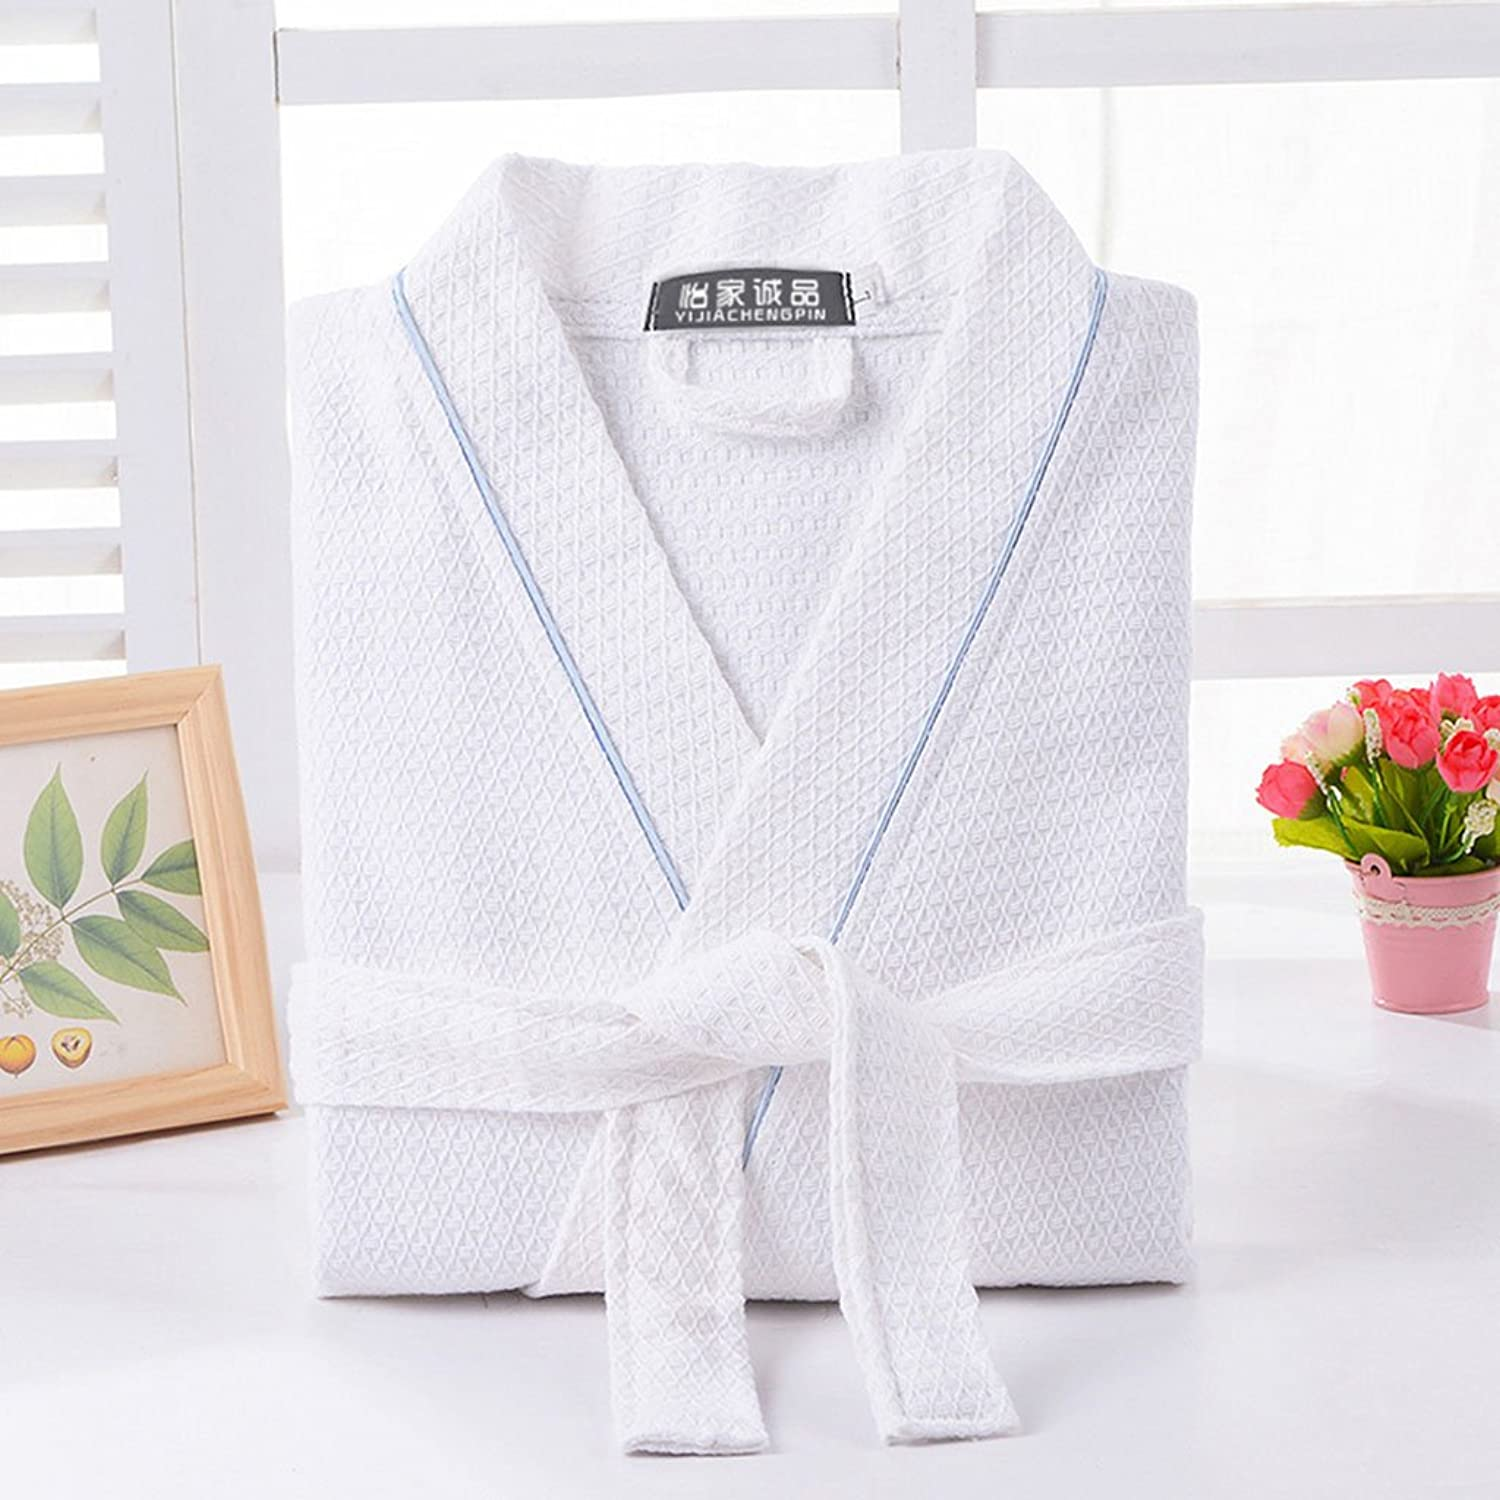 GJM Shop 100% Cotton Thin Section LongSleeved Kimono Collar Bathrobe Men and Women Summer Cotton Hotel Water Absorption Nightgown (color   2, Size   L)